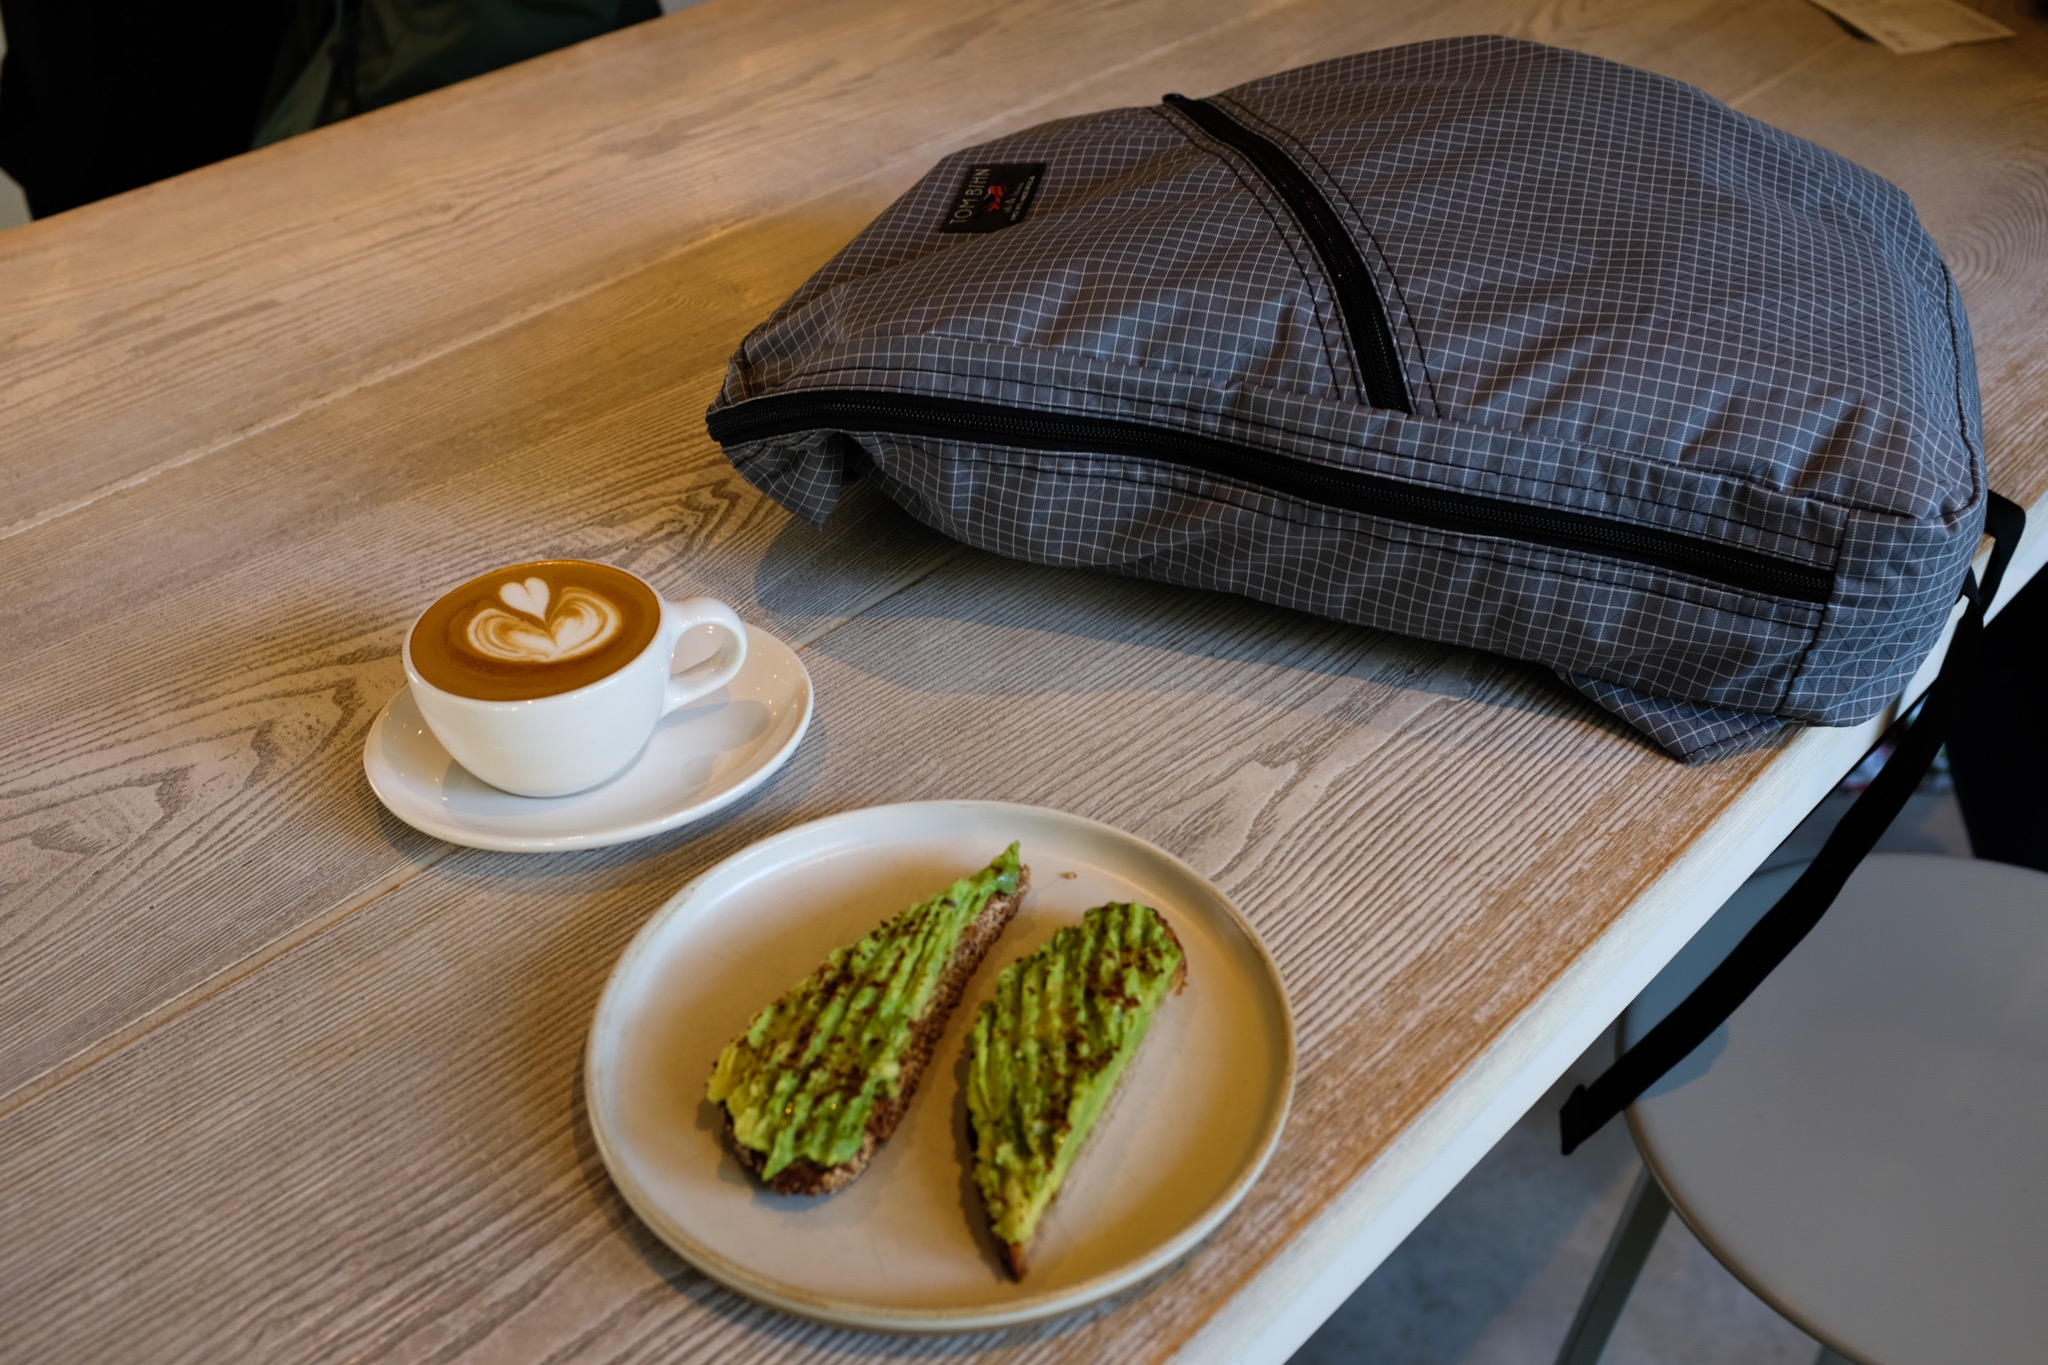 At Blue Bottle Coffee in Aoyama, Tokyo